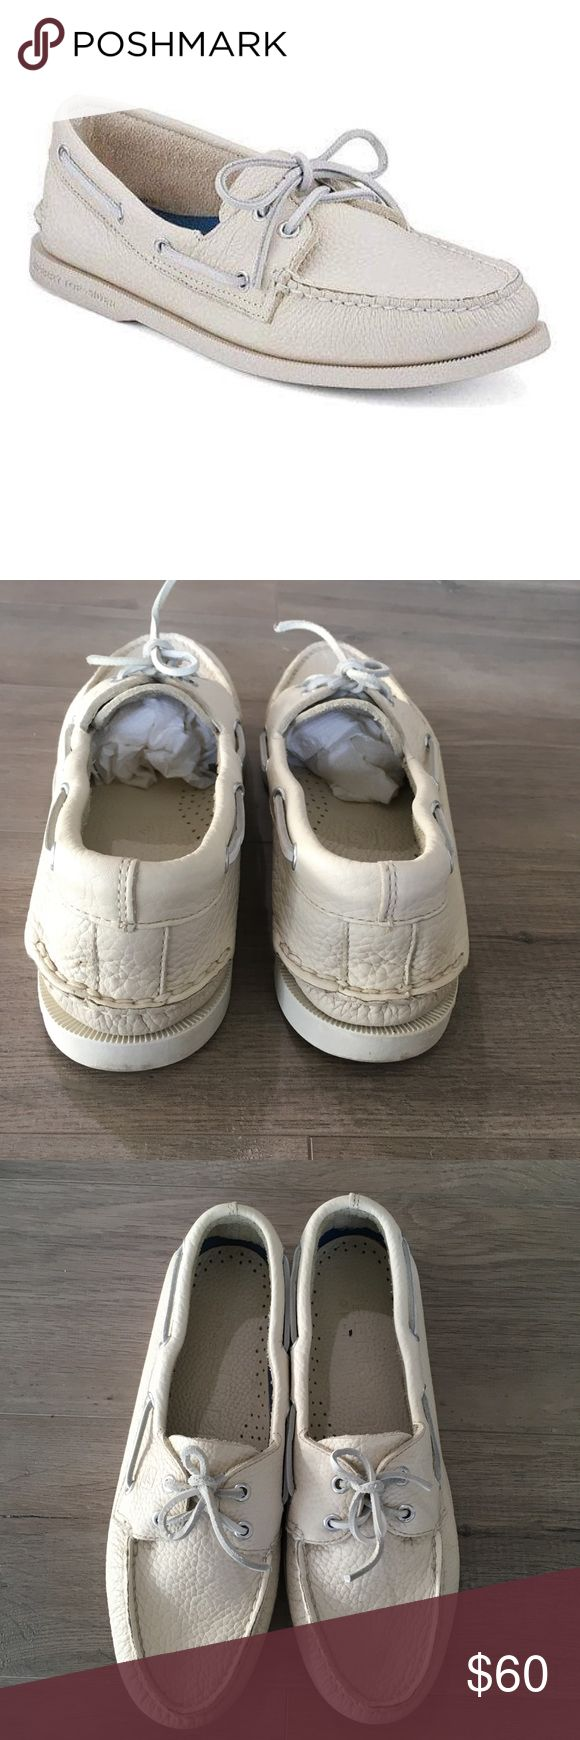 SPERRY ~ men's white top sided original boat shoe SPERRY ~   SPERRY brand  Top sider  Original boat shoe  Men's boat shoes  Men's loafer  White boat shoe  Genuine leather  New without box  Size 10.5  Non marking soles Sperry Top-Sider Shoes Boat Shoes